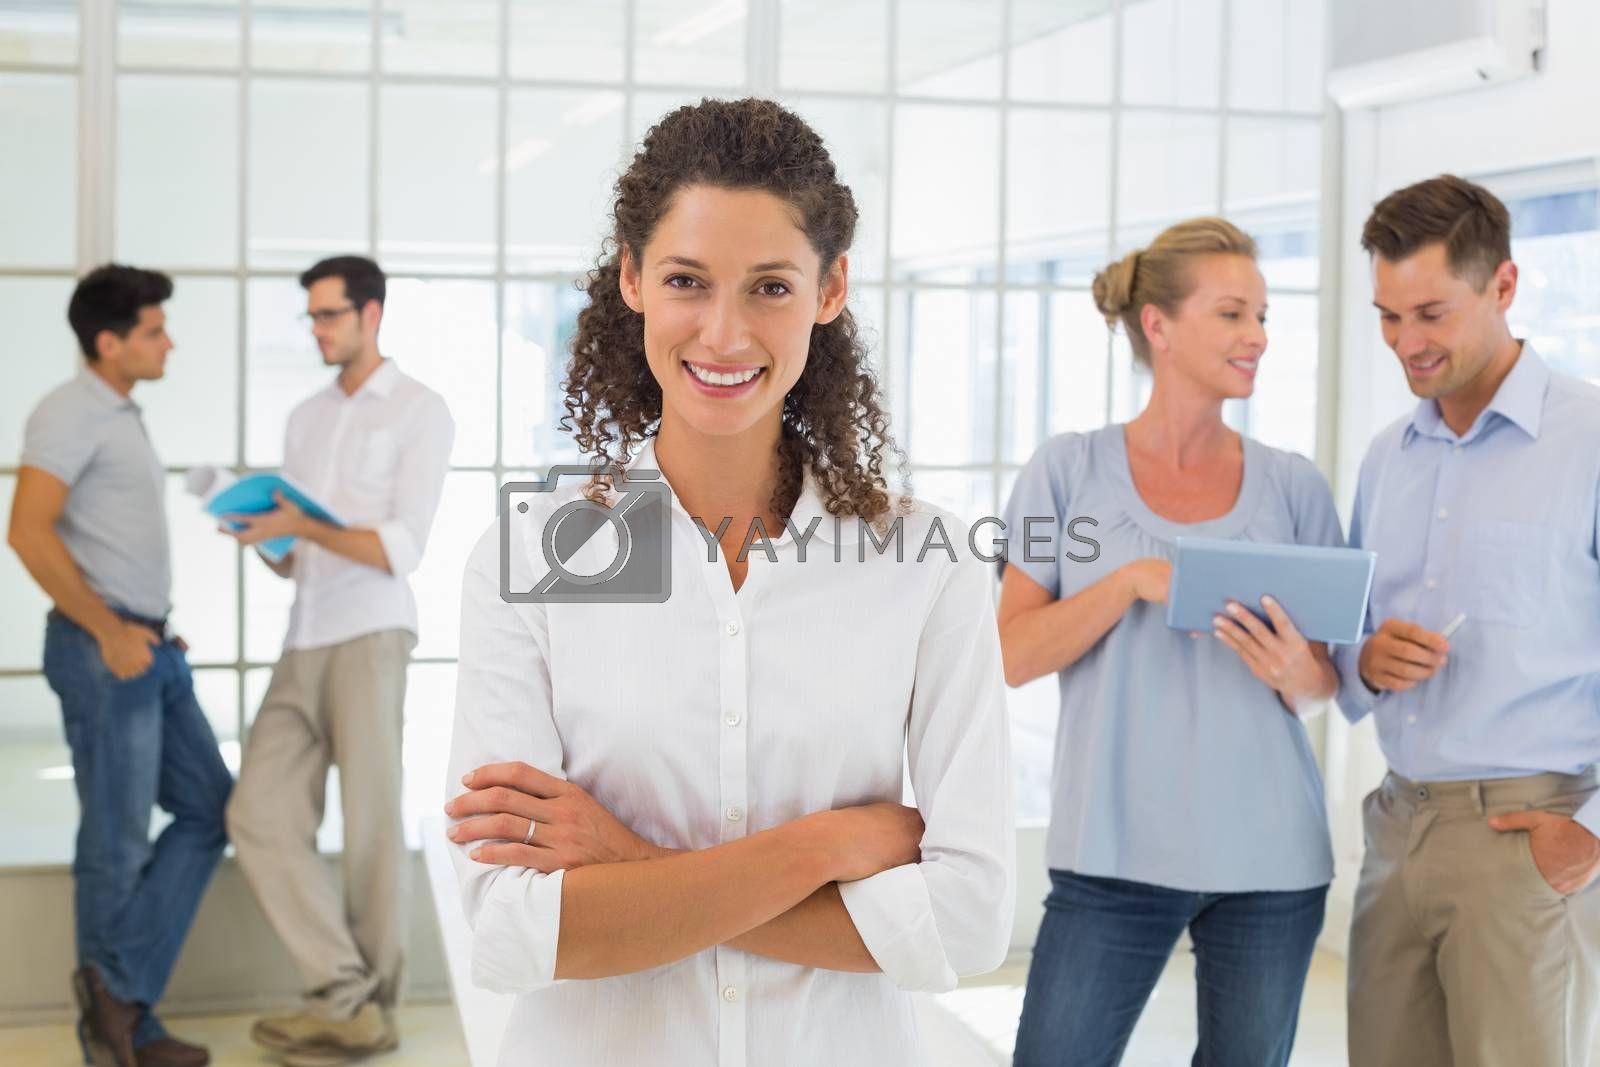 Royalty free image of Casual businesswoman smiling at camera with team behind her by Wavebreakmedia